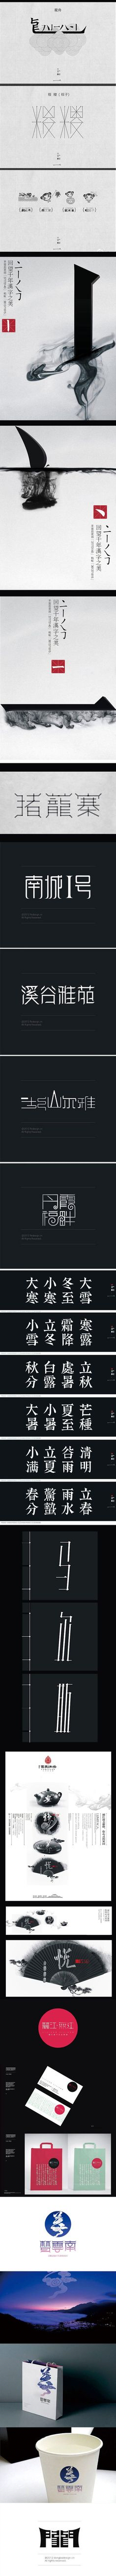 typography | 漢字之美 / Beauty of Chinese & Japanese Typography